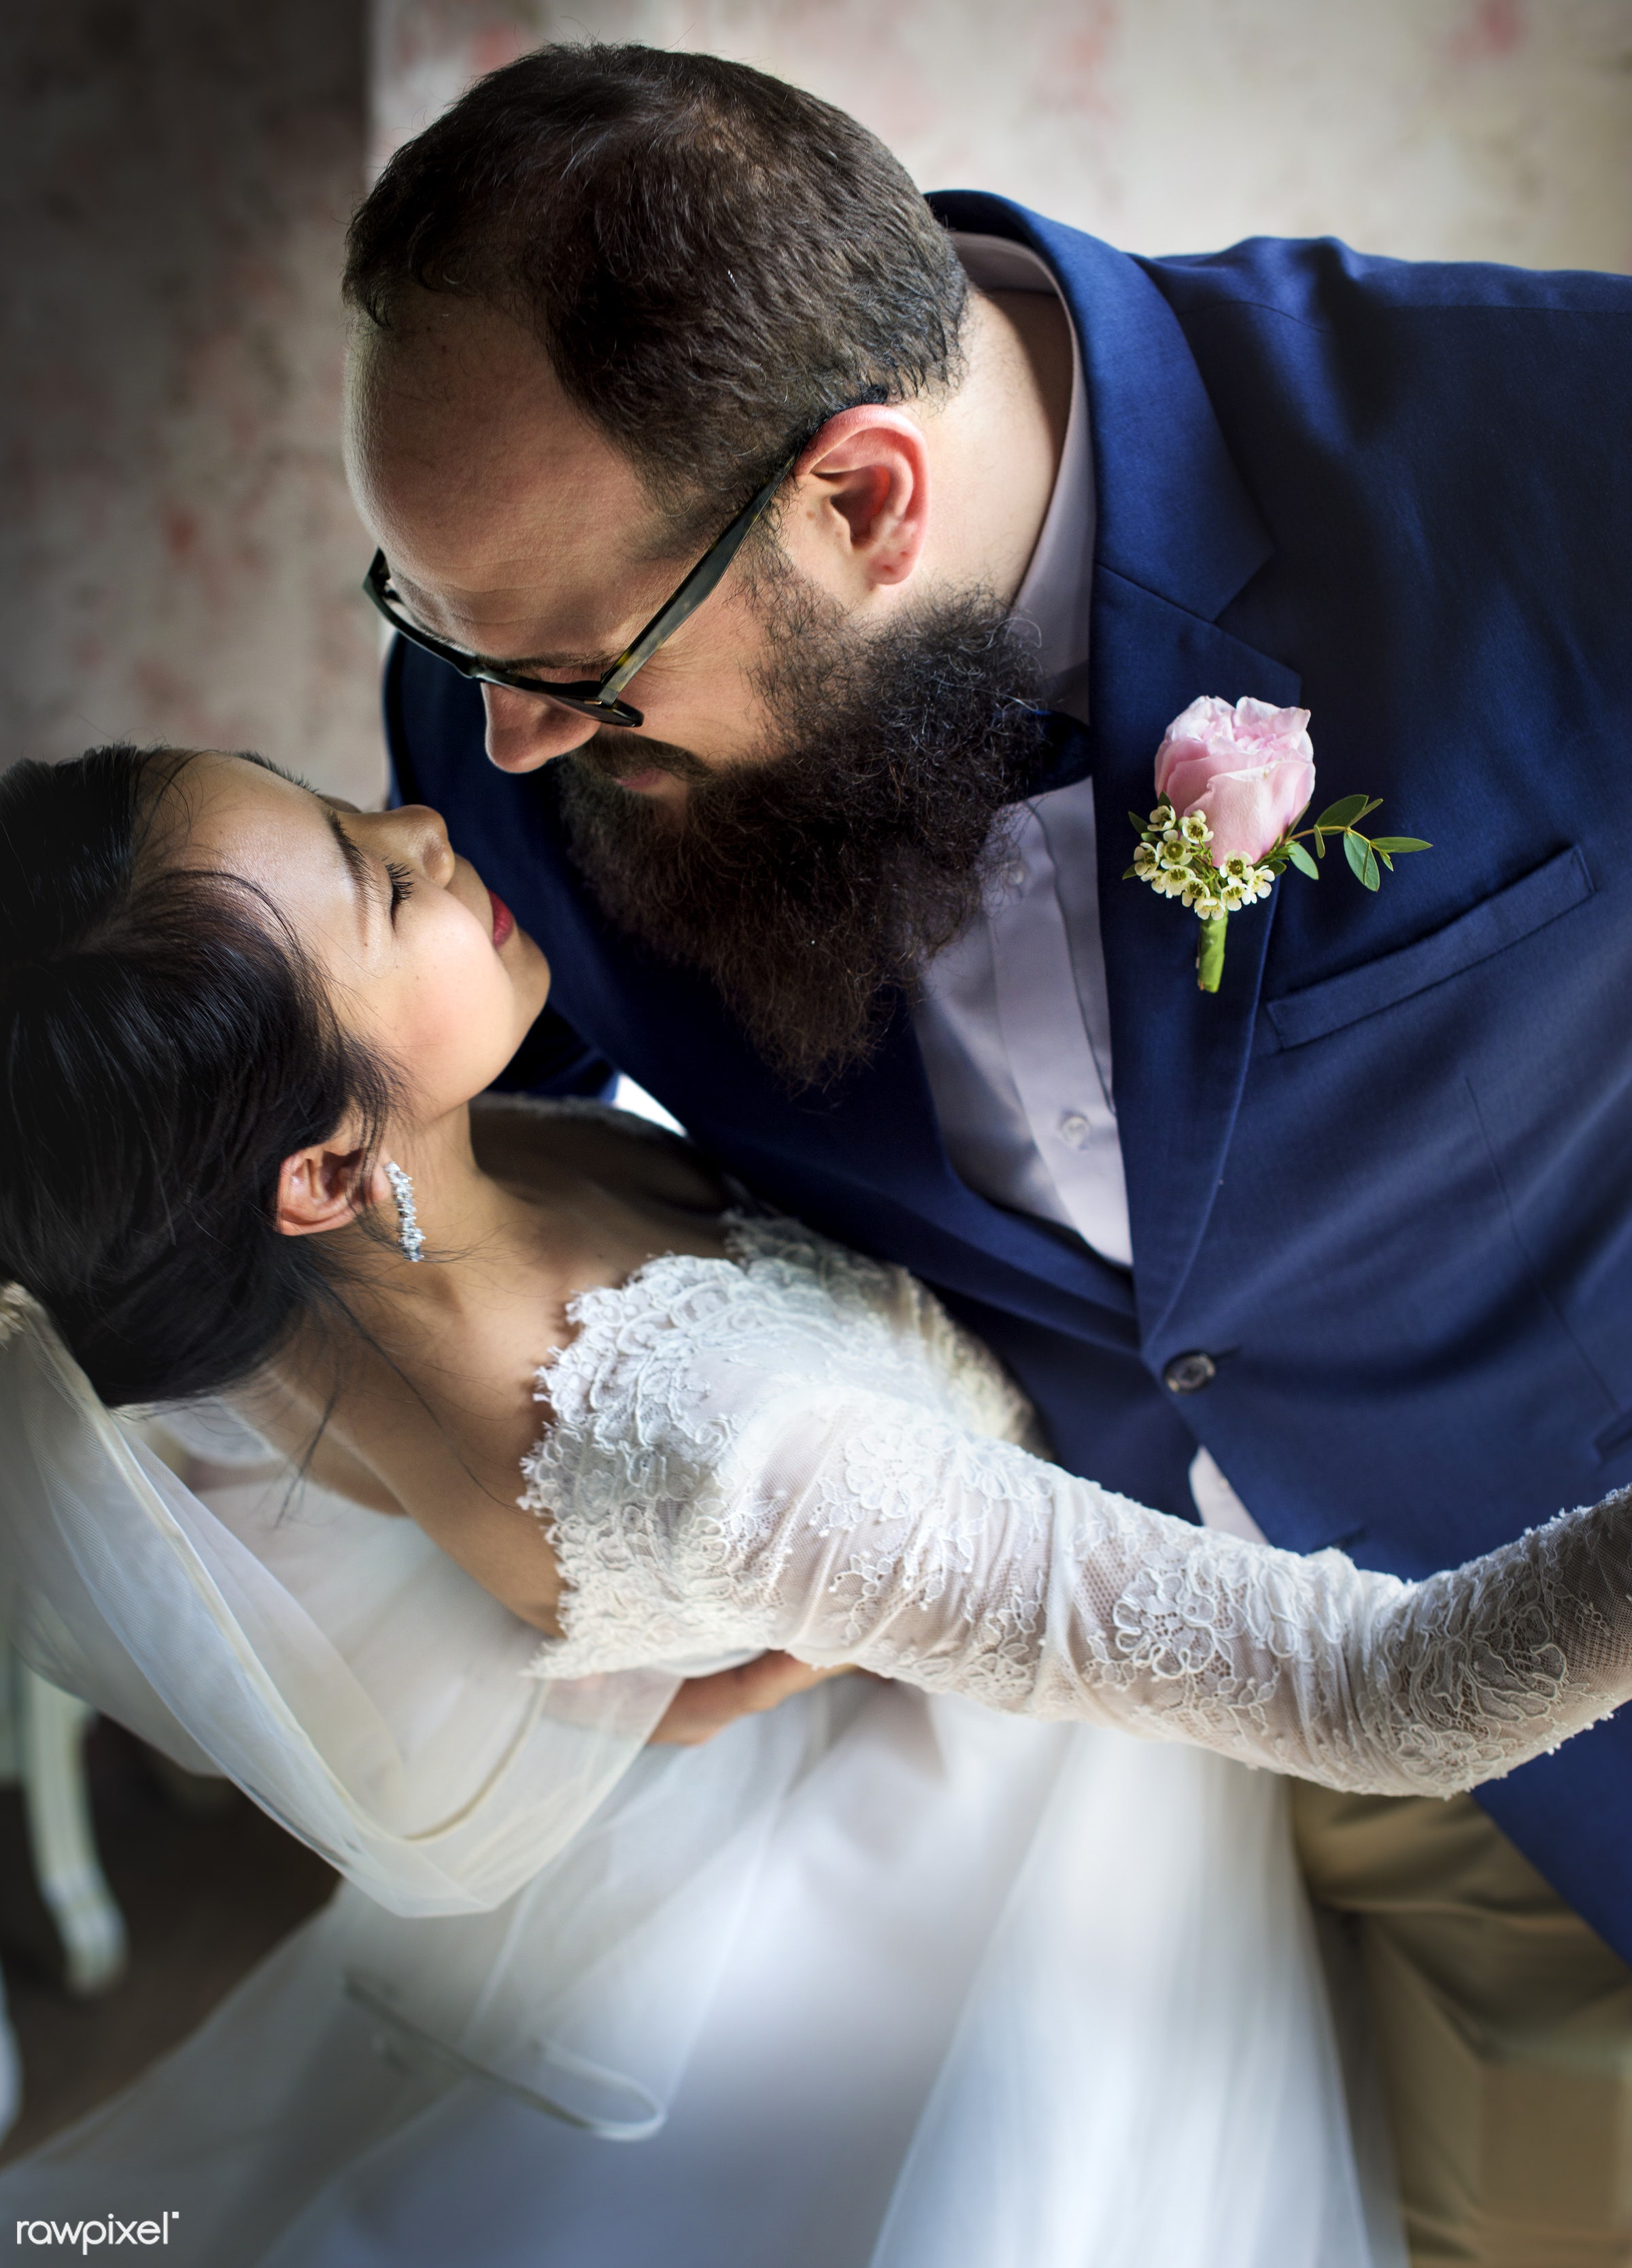 holding, occasion, asian bride, people, together, love, married, gala, hands, spouse, banquet, cheerful, closeup, caucasian...